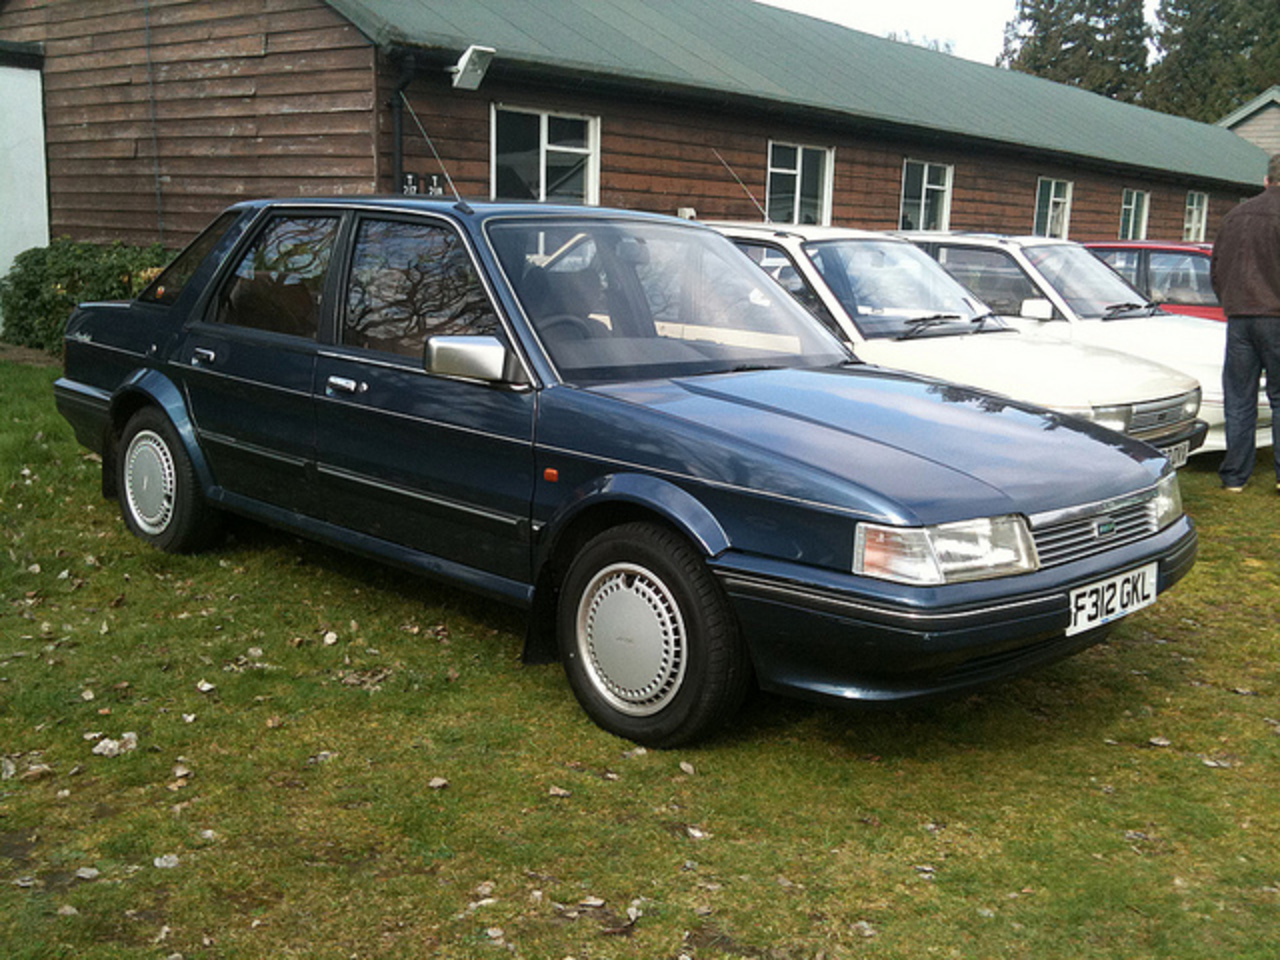 1989 AUSTIN MONTEGO MAYFAIR EFI | Flickr - Photo Sharing!